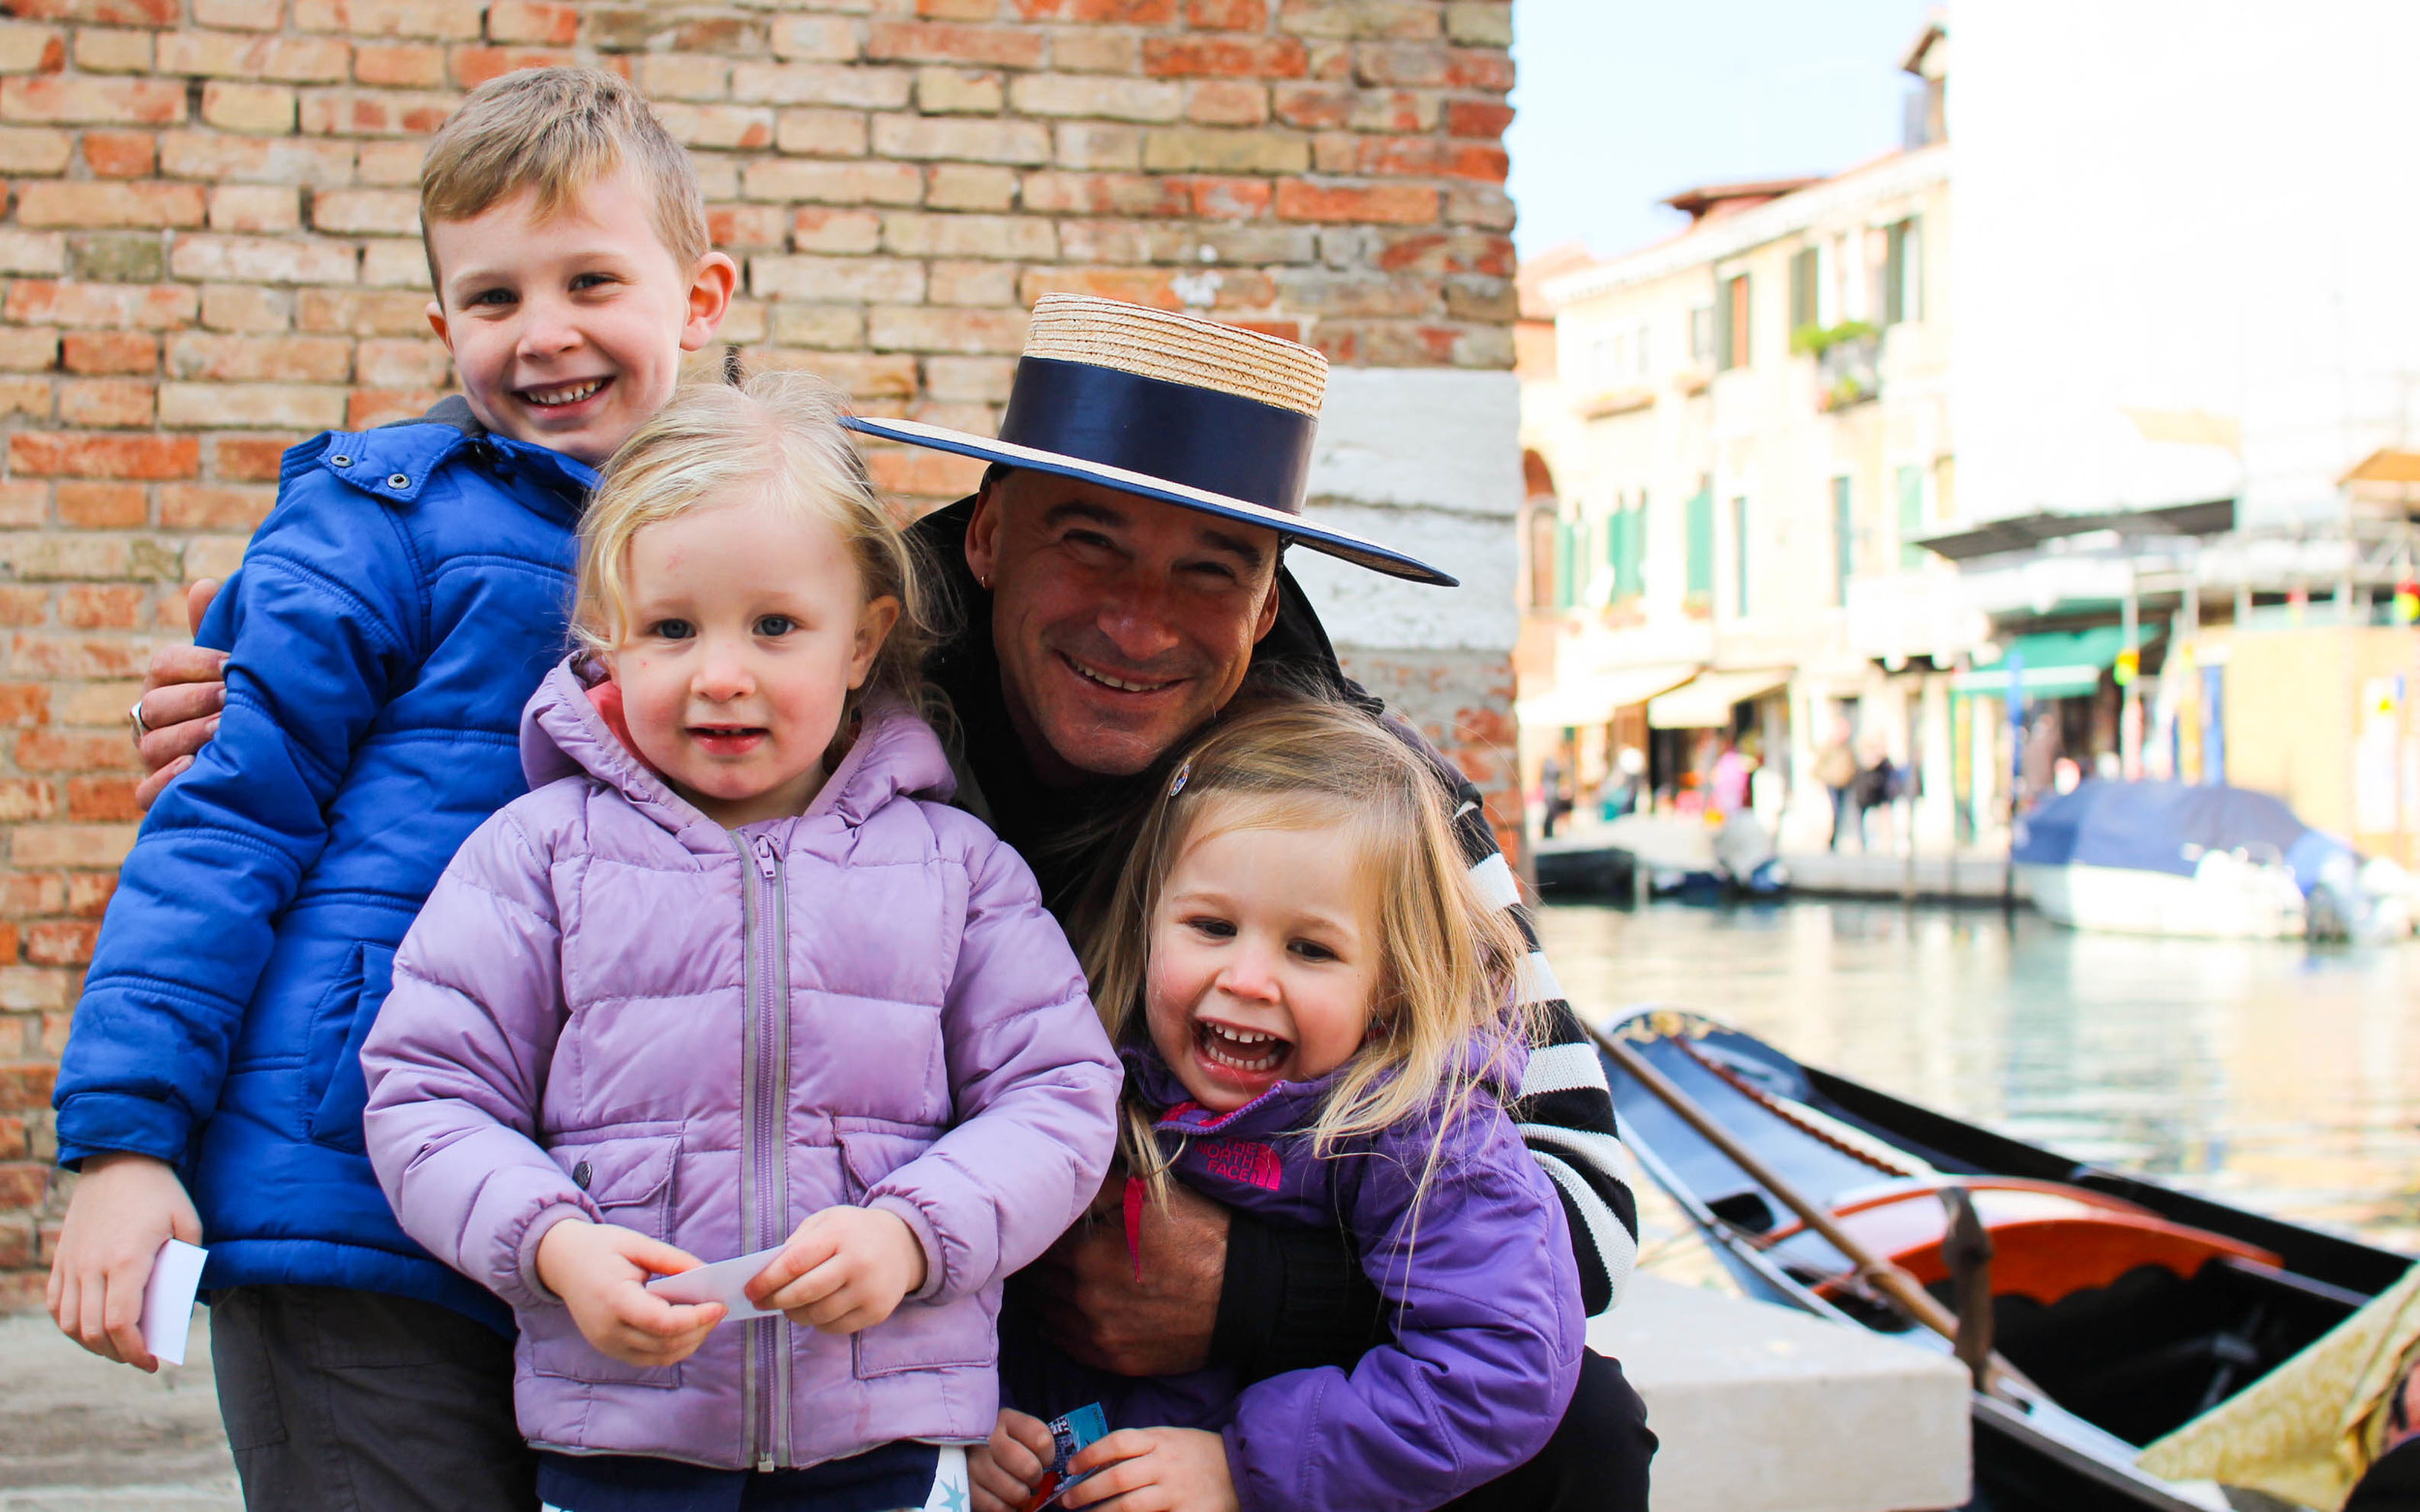 With our gondolier, the fantastic Luca